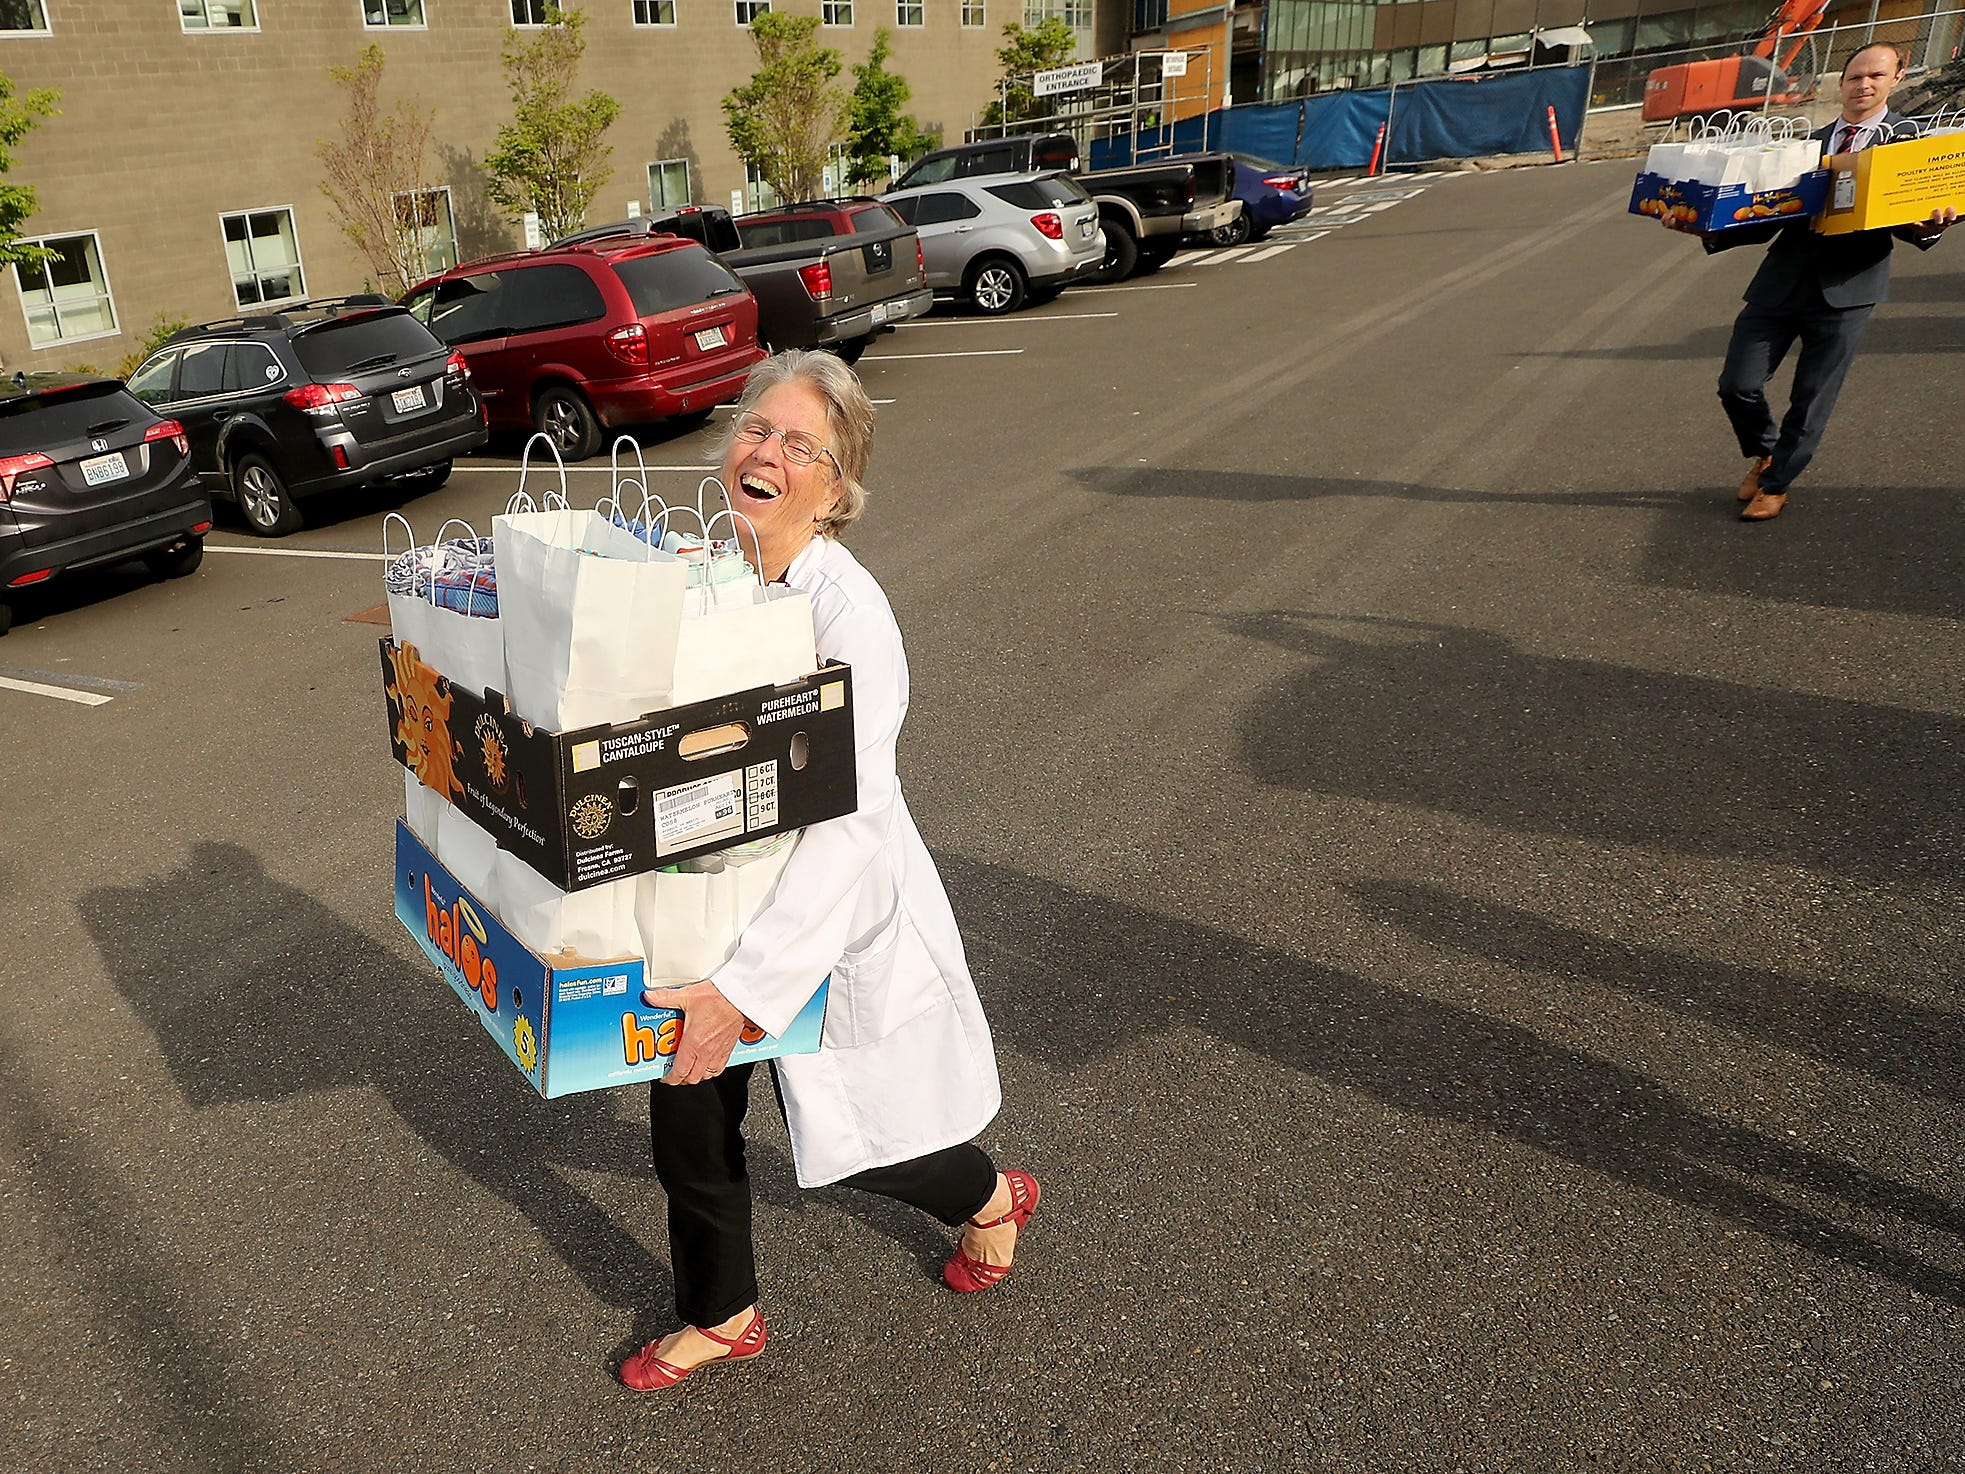 Clinical Nurse Specialist, RN Peggy Visher laughs as she carries boxes filled with bags of handmade blankets from the parking lot into Harrison Medical Center in Silverdale on Thursday, April 25, 2019.